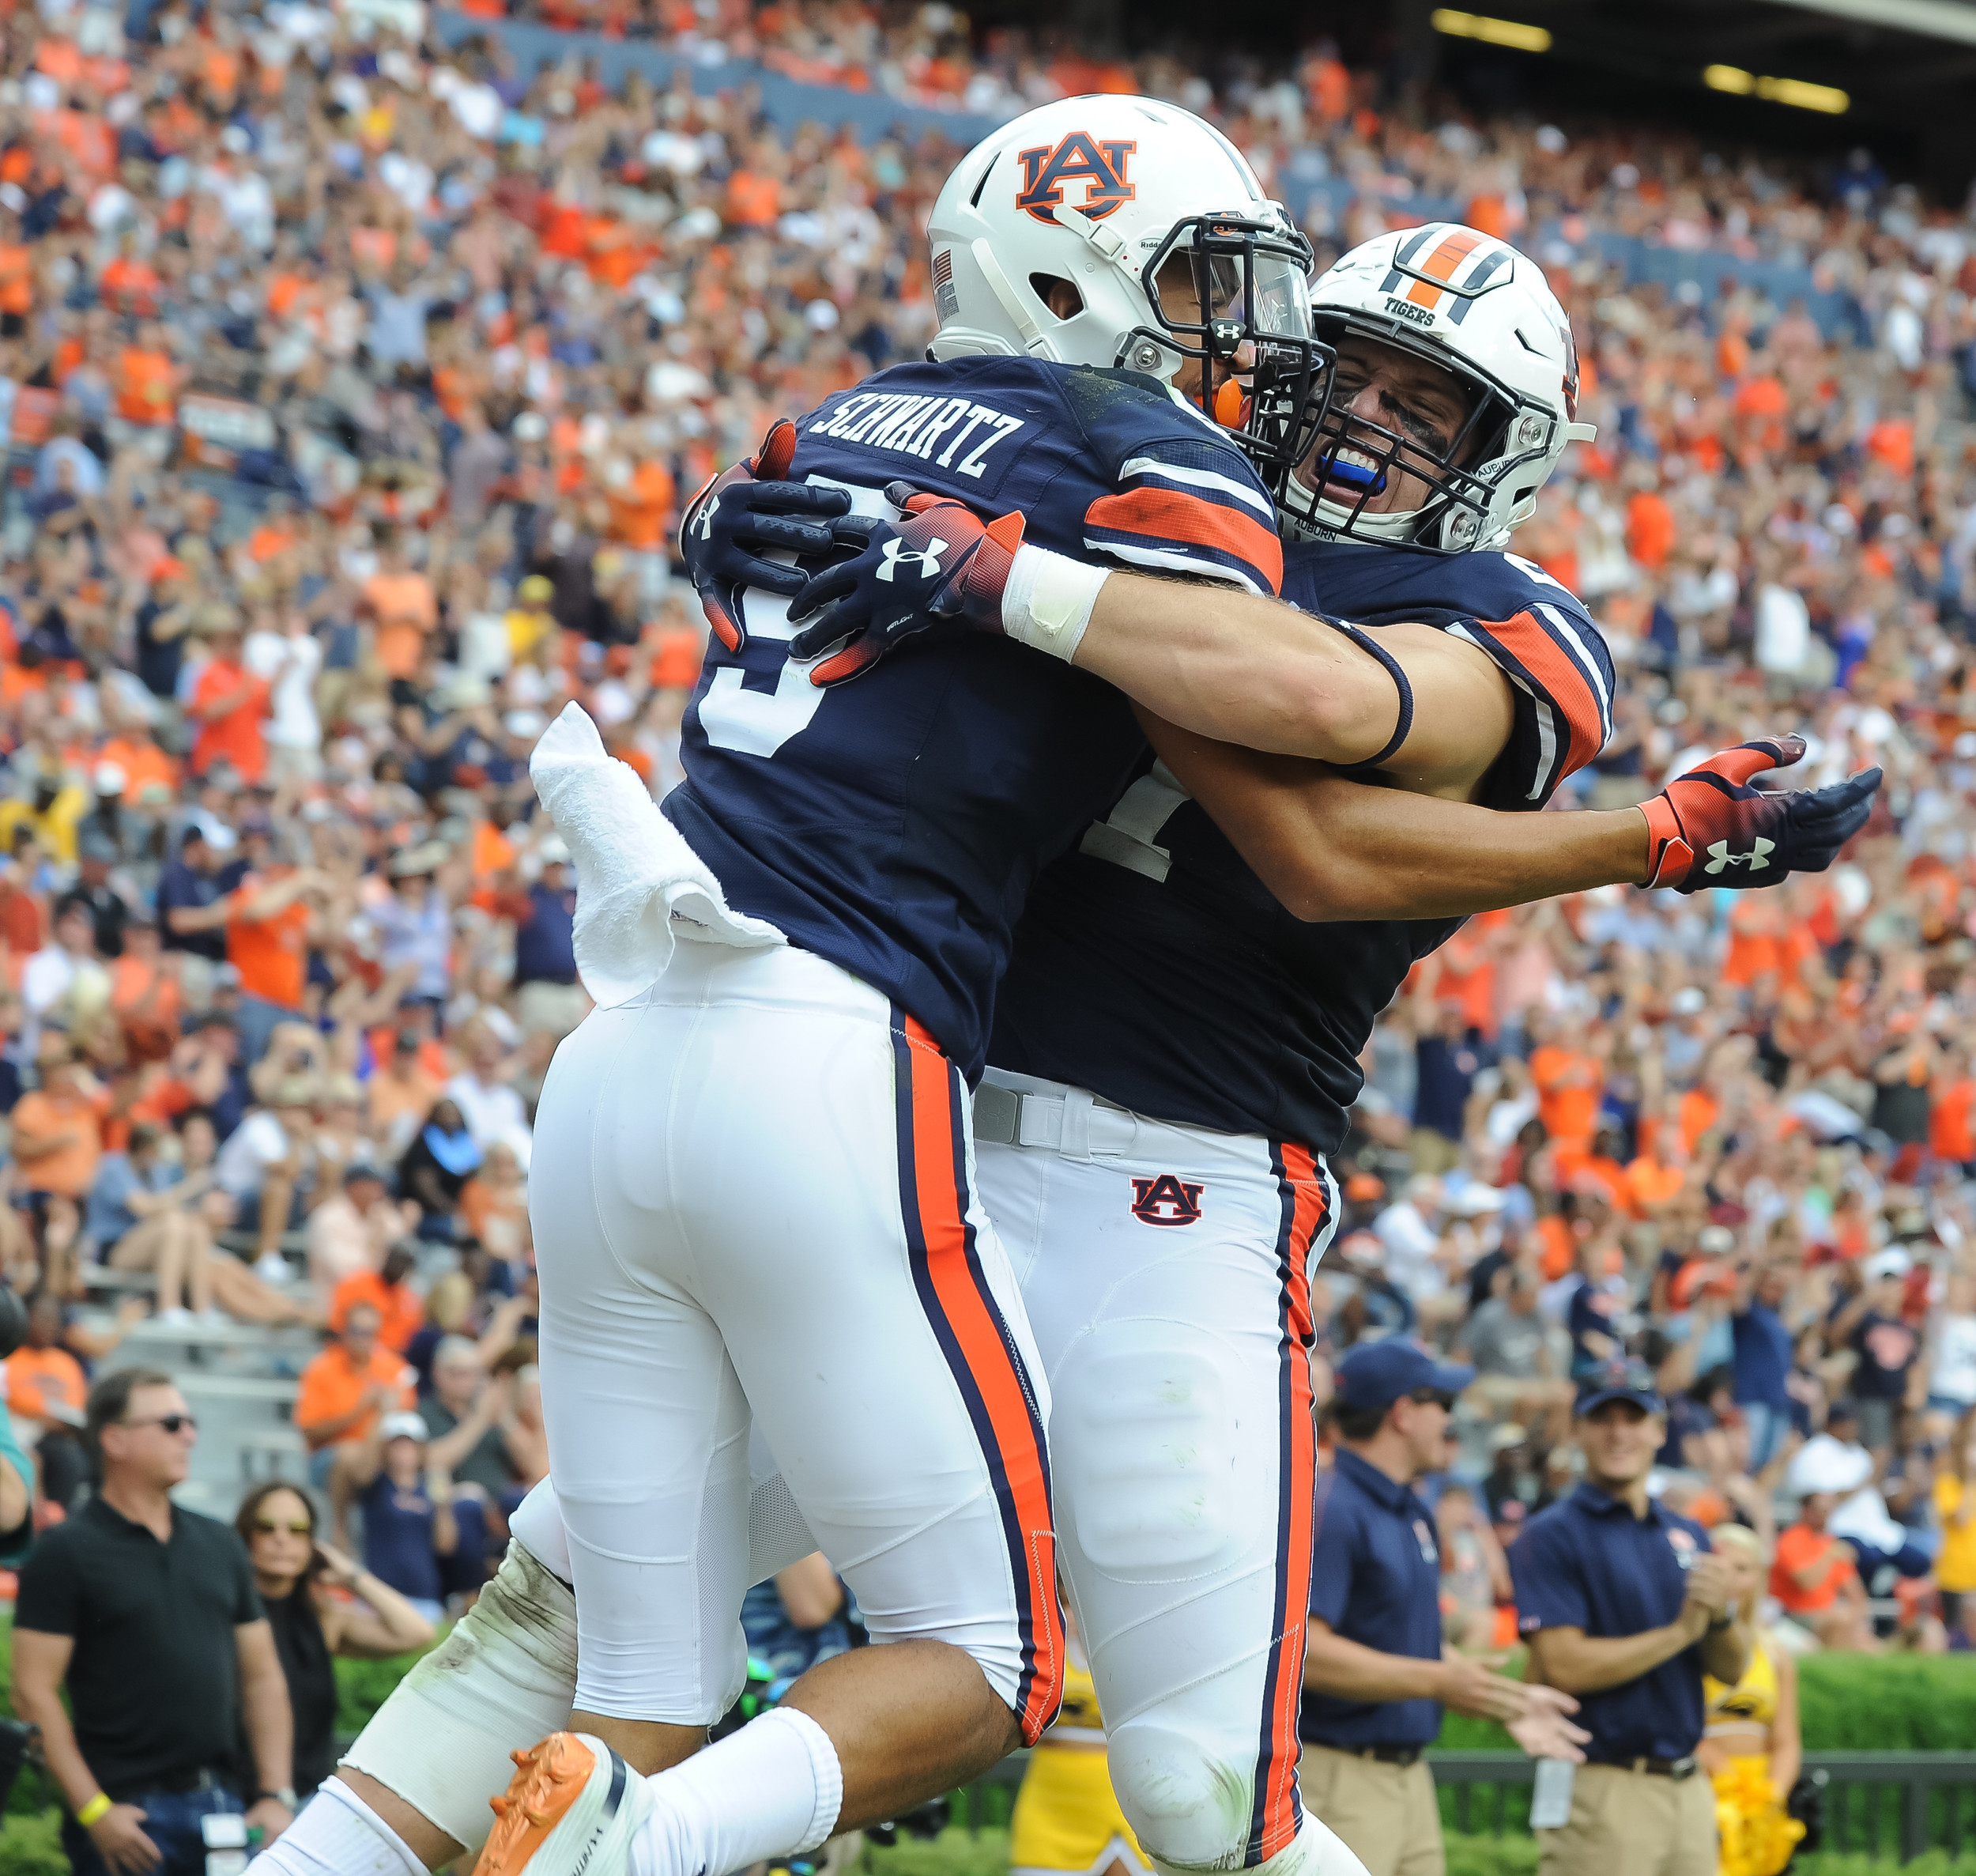 Auburn Tigers wide receiver Anthony Schwartz (5) and fullback Chandler Cox (27) celebrate after Schwartz' touchdown run during the first half of Saturday's game, at Jordan Hare Stadium in Auburn AL. Daily Mountain Eagle -  Jeff Johnsey